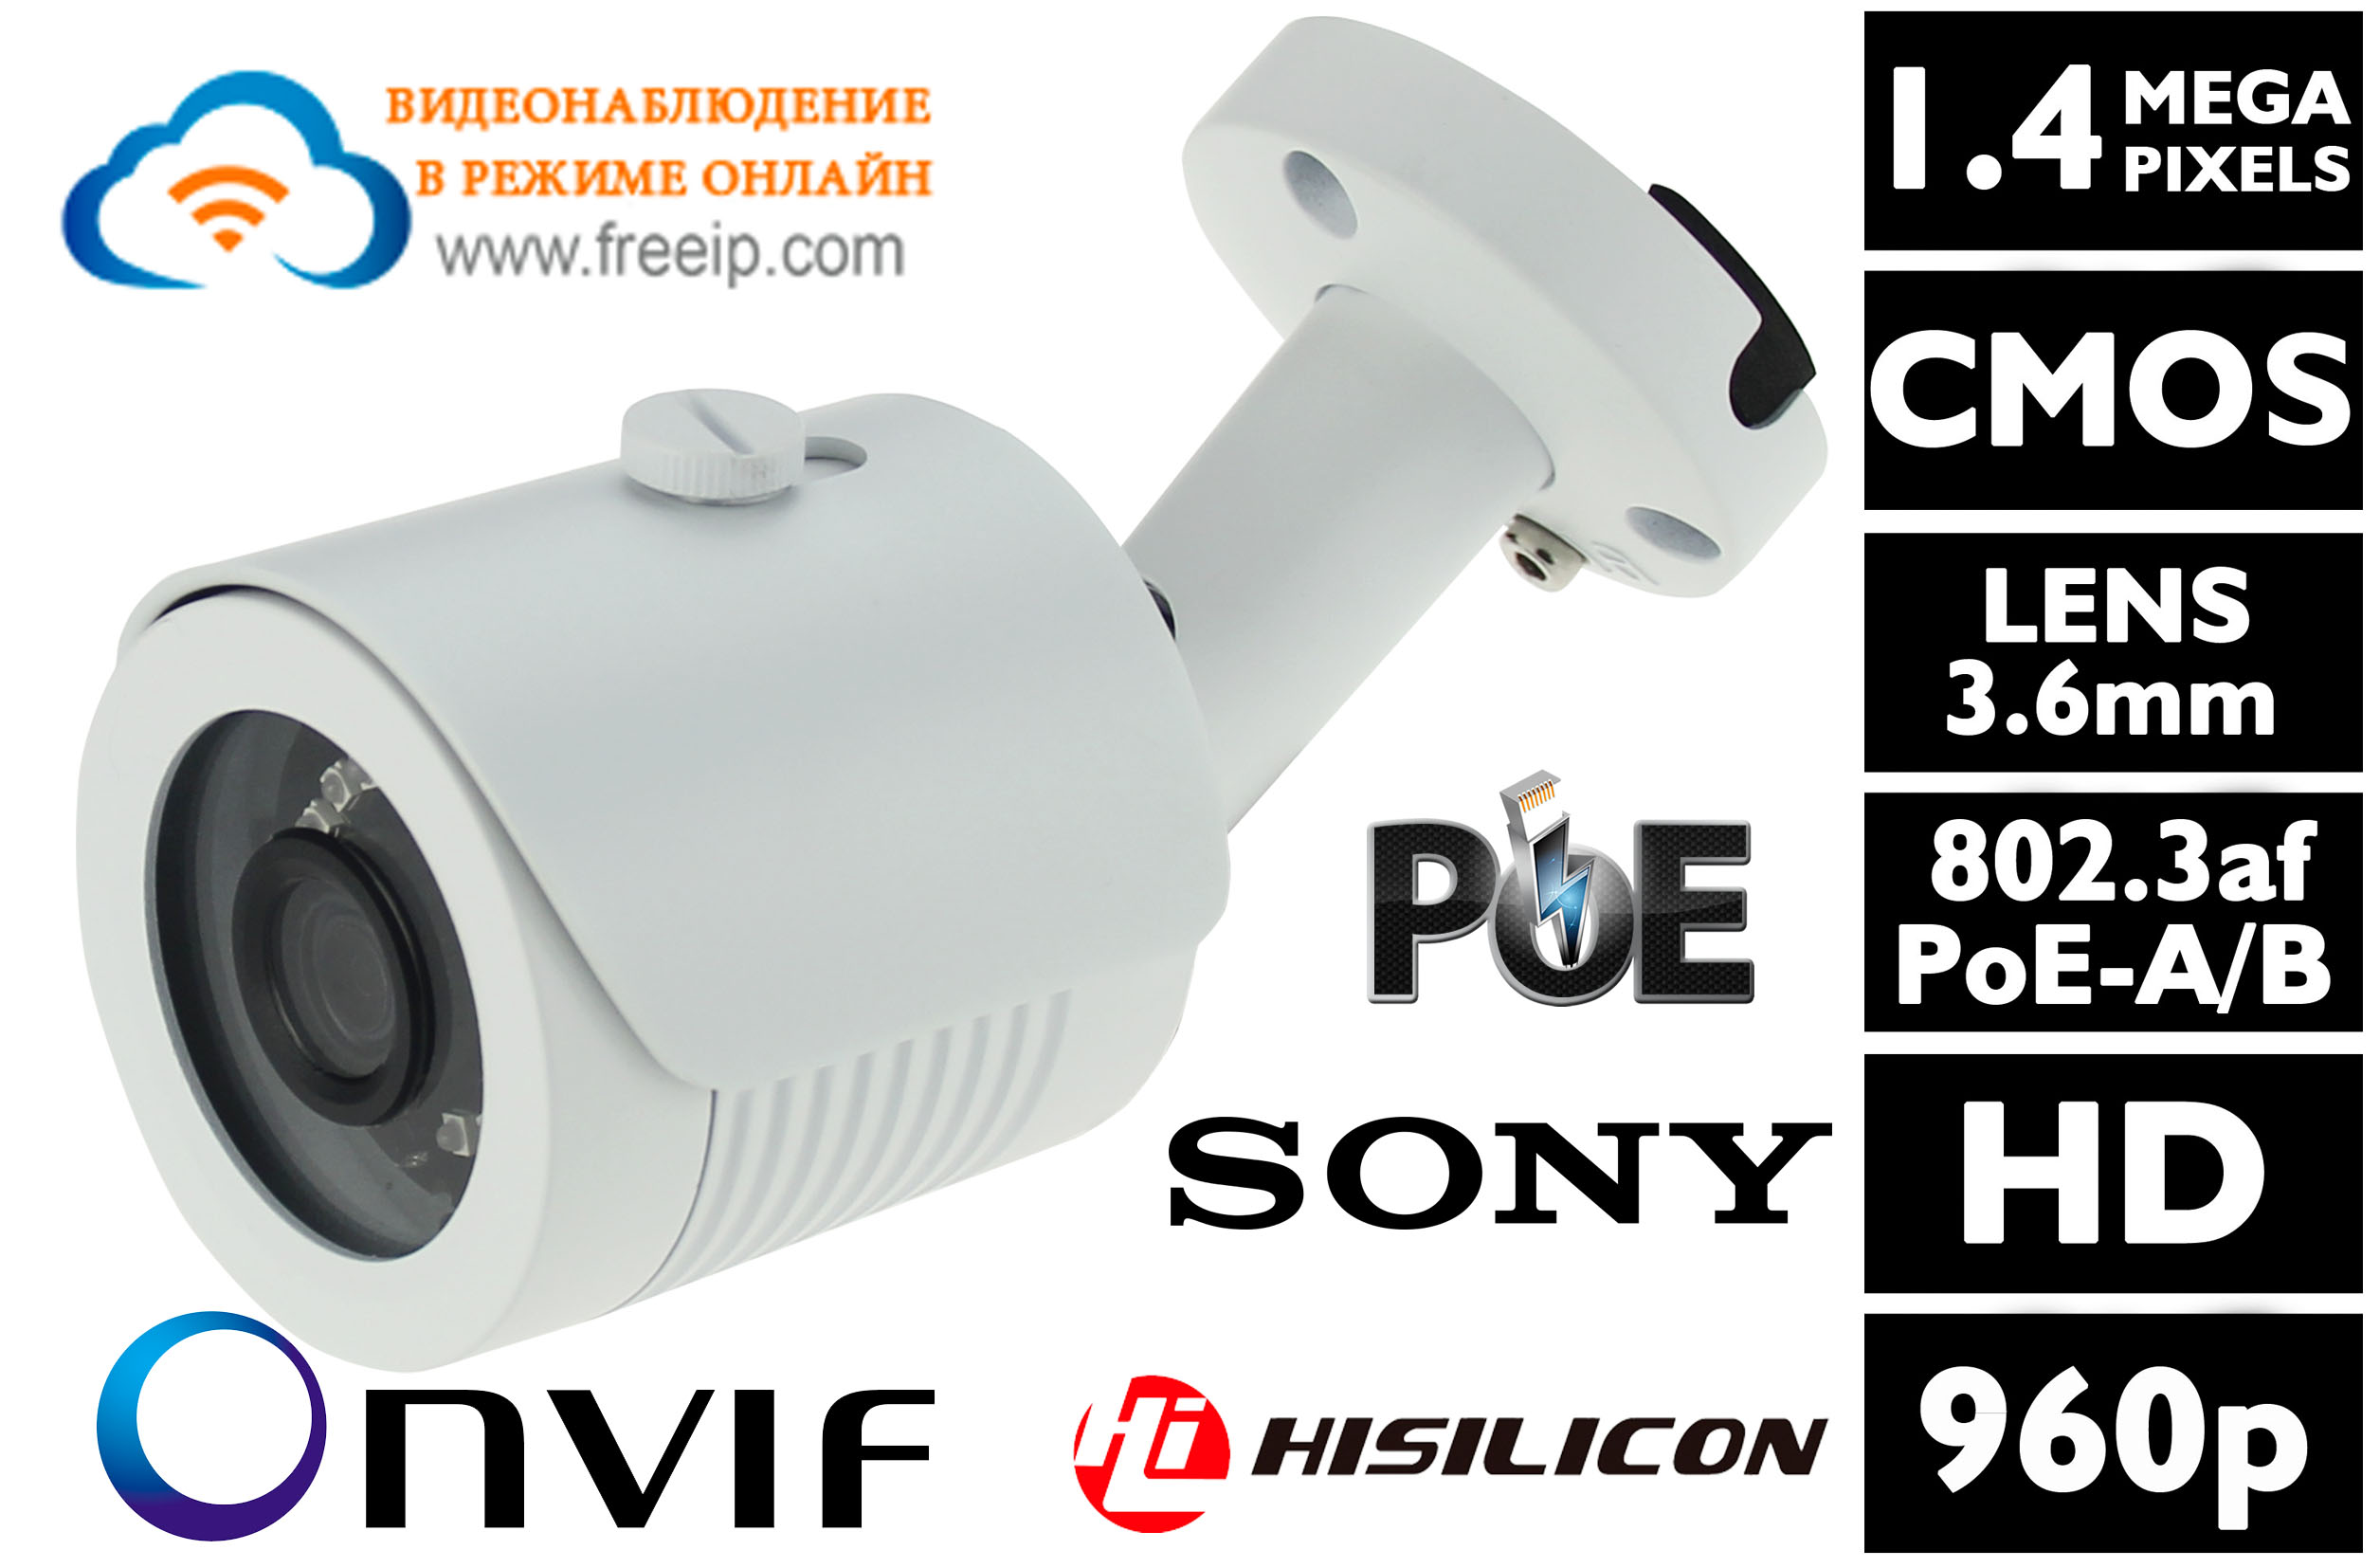 Камера видеонаблюдения ORIENT IP-33-SH14BP. Sony IMX238+Hi3518C. 1,4MP, 1024P, 960P, 720P, IR-cut, PoE, waterproof socket